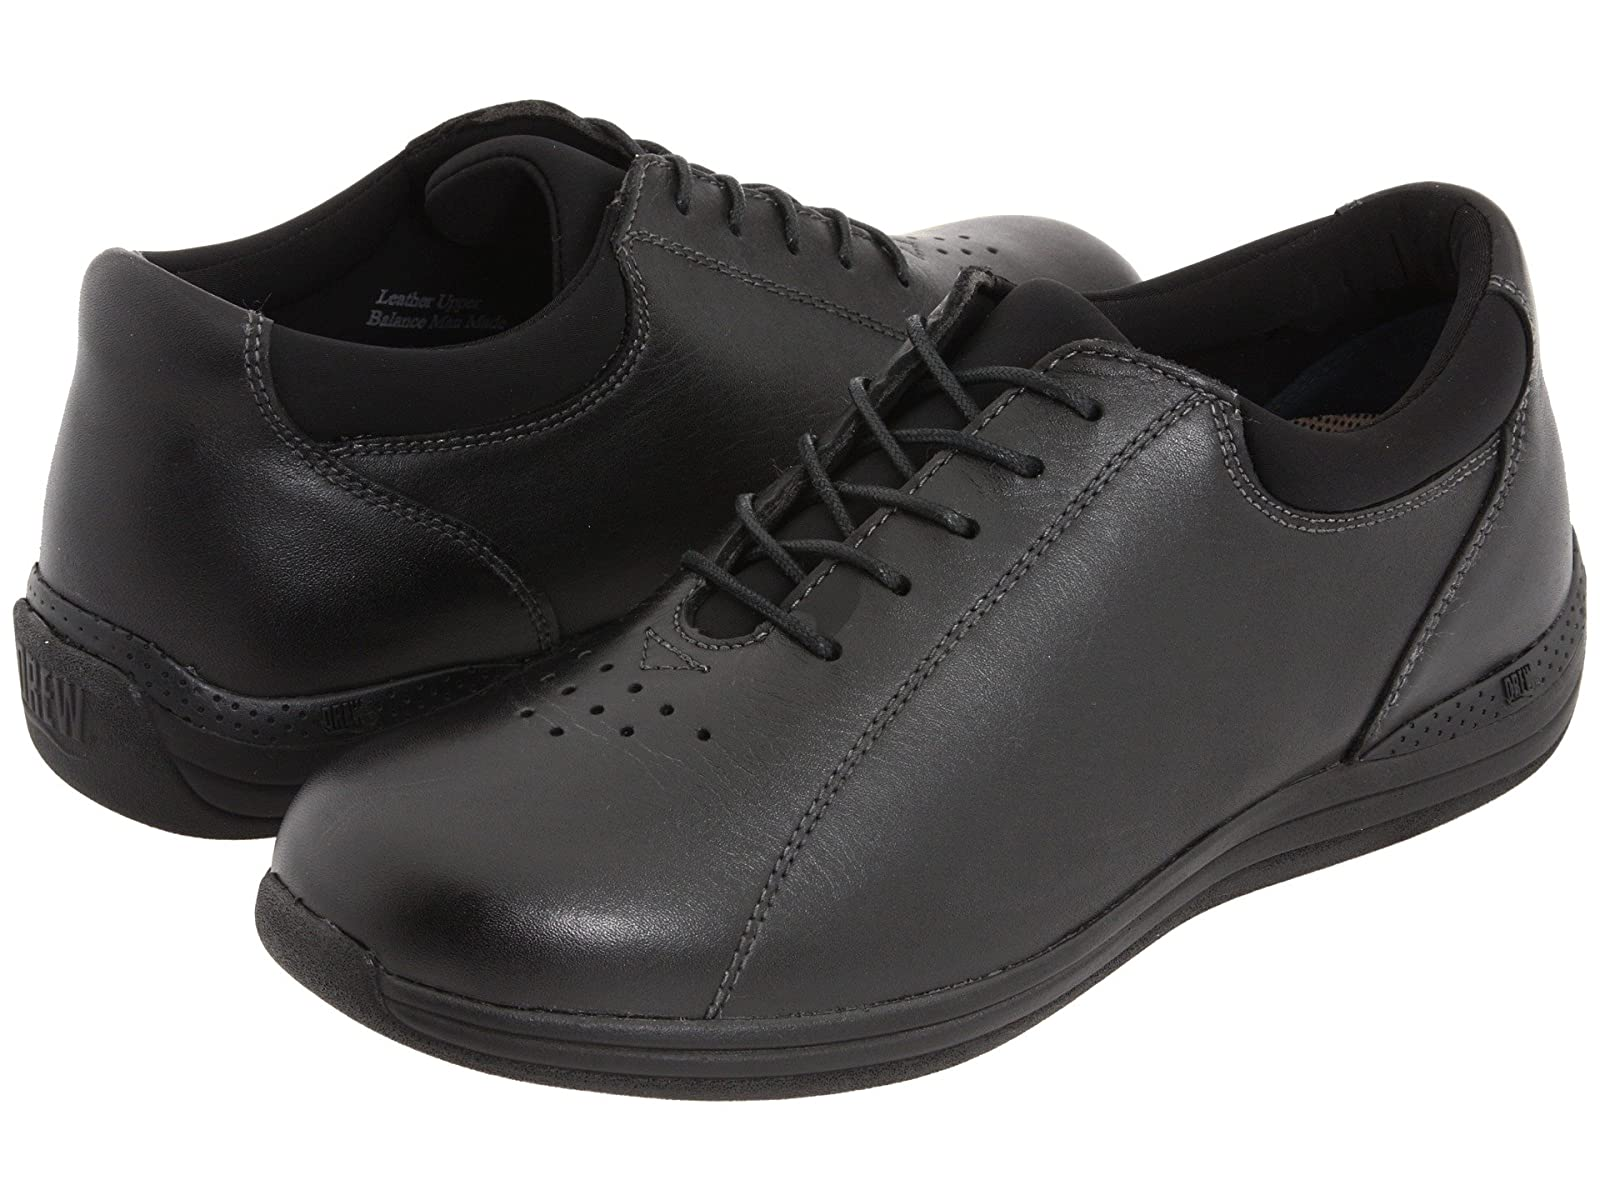 Drew TulipAtmospheric grades have affordable shoes